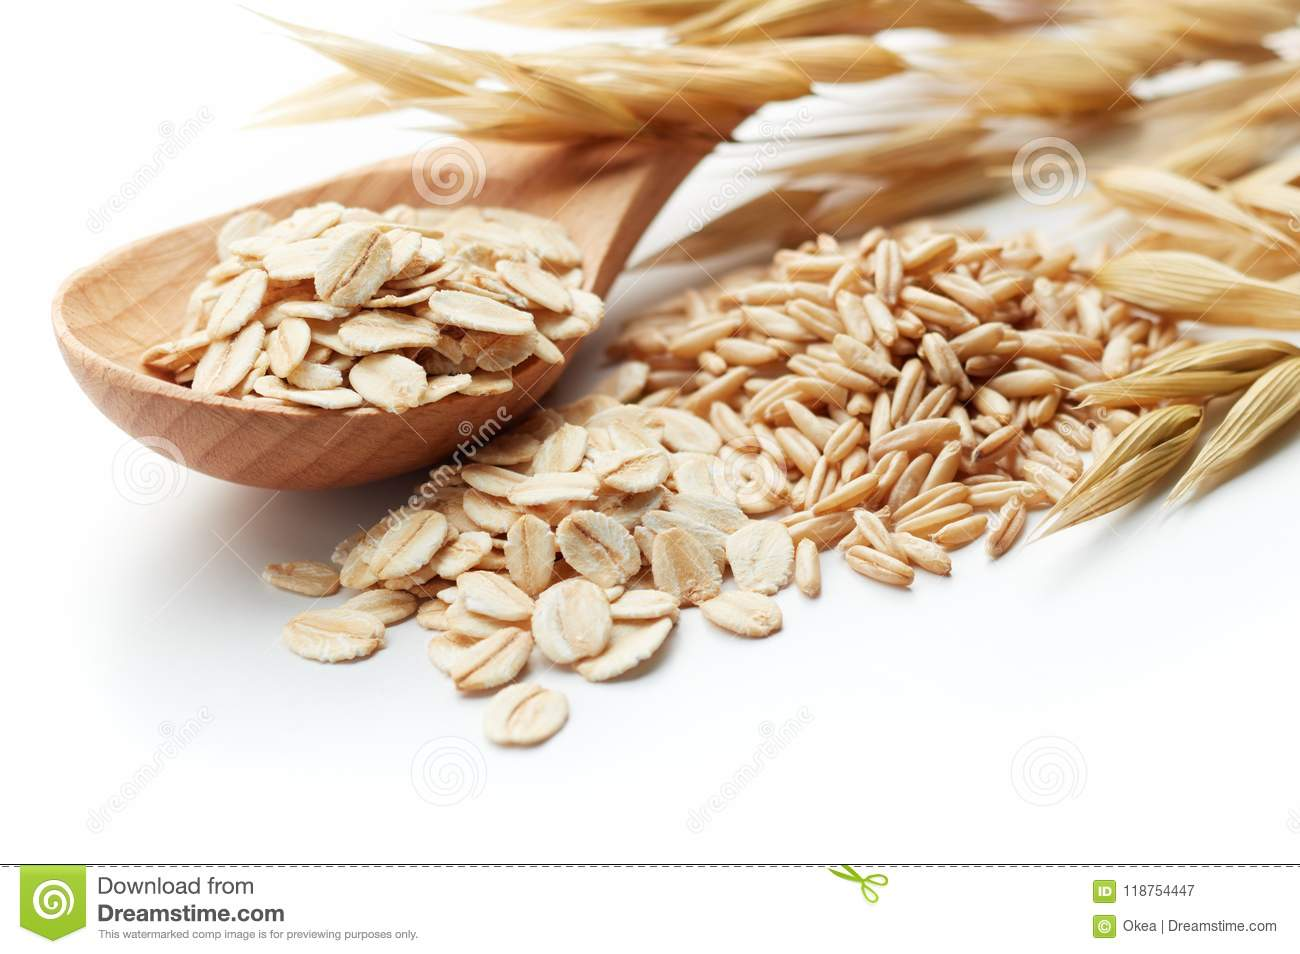 Download Oats stock image. Image of unmilled, group, pile, spoon - 118754447